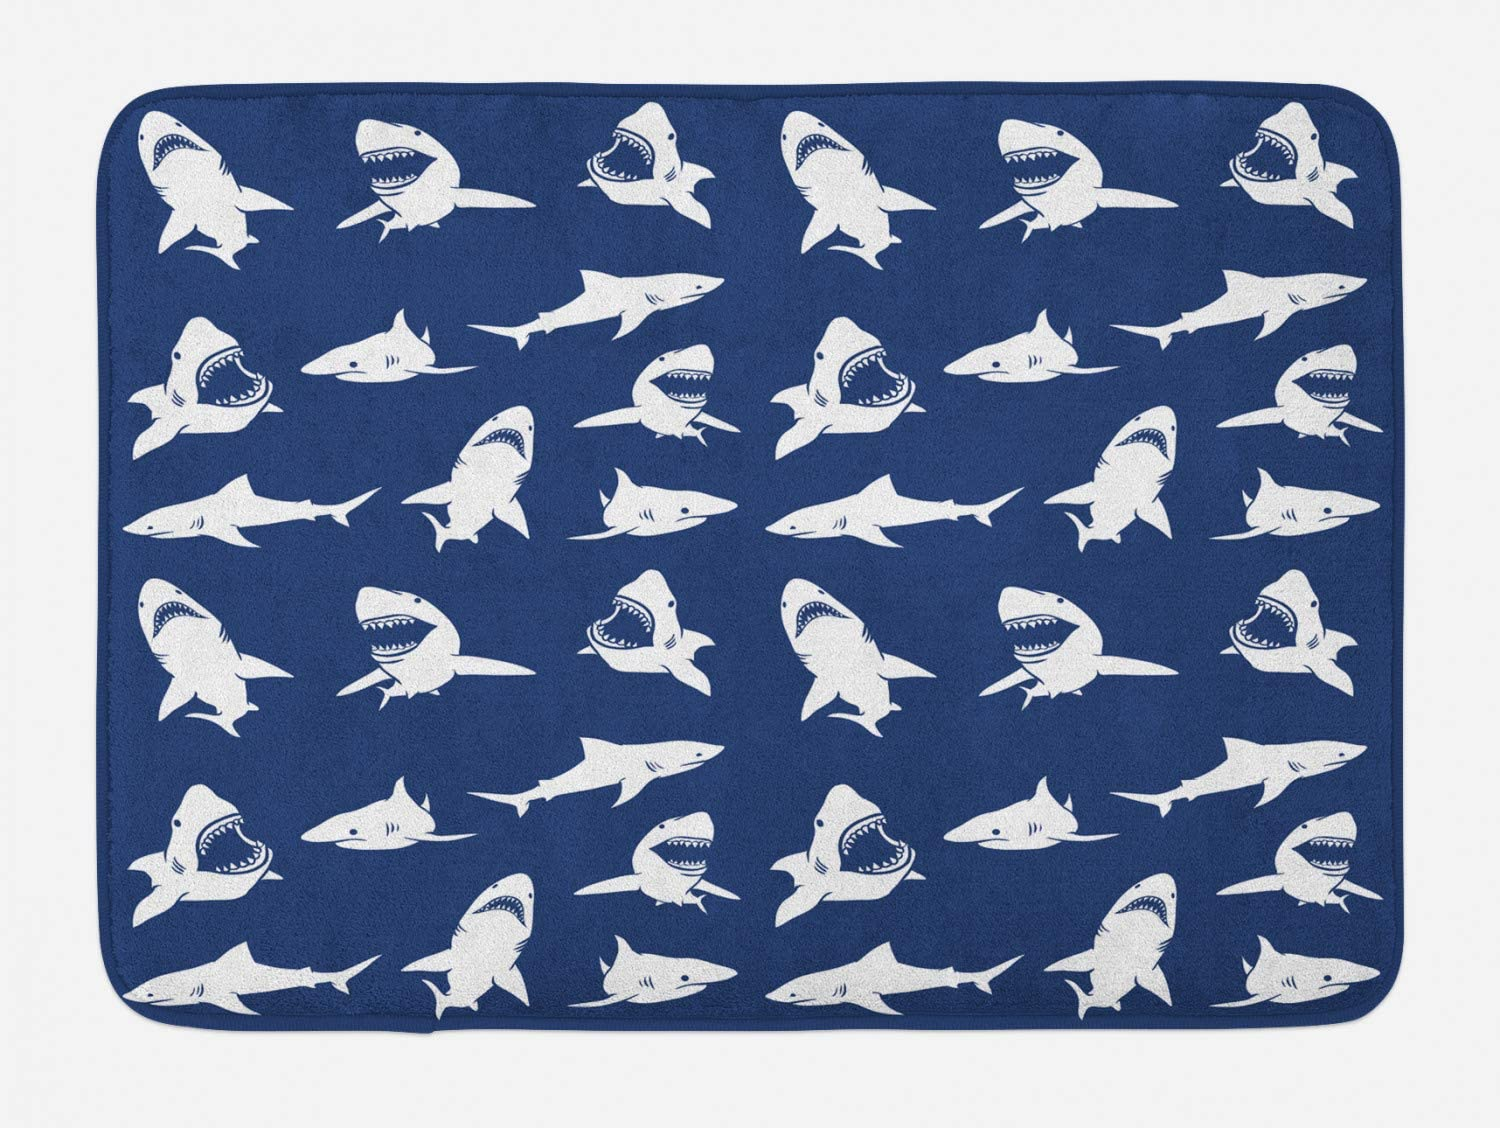 "Ambesonne Shark Bath Mat, Fish Pattern Various Gestures Have a Bite Danger Humor Nautical Design, Plush Bathroom Decor Mat with Non Slip Backing, 29.5"" X 17.5"", Violet Blue"